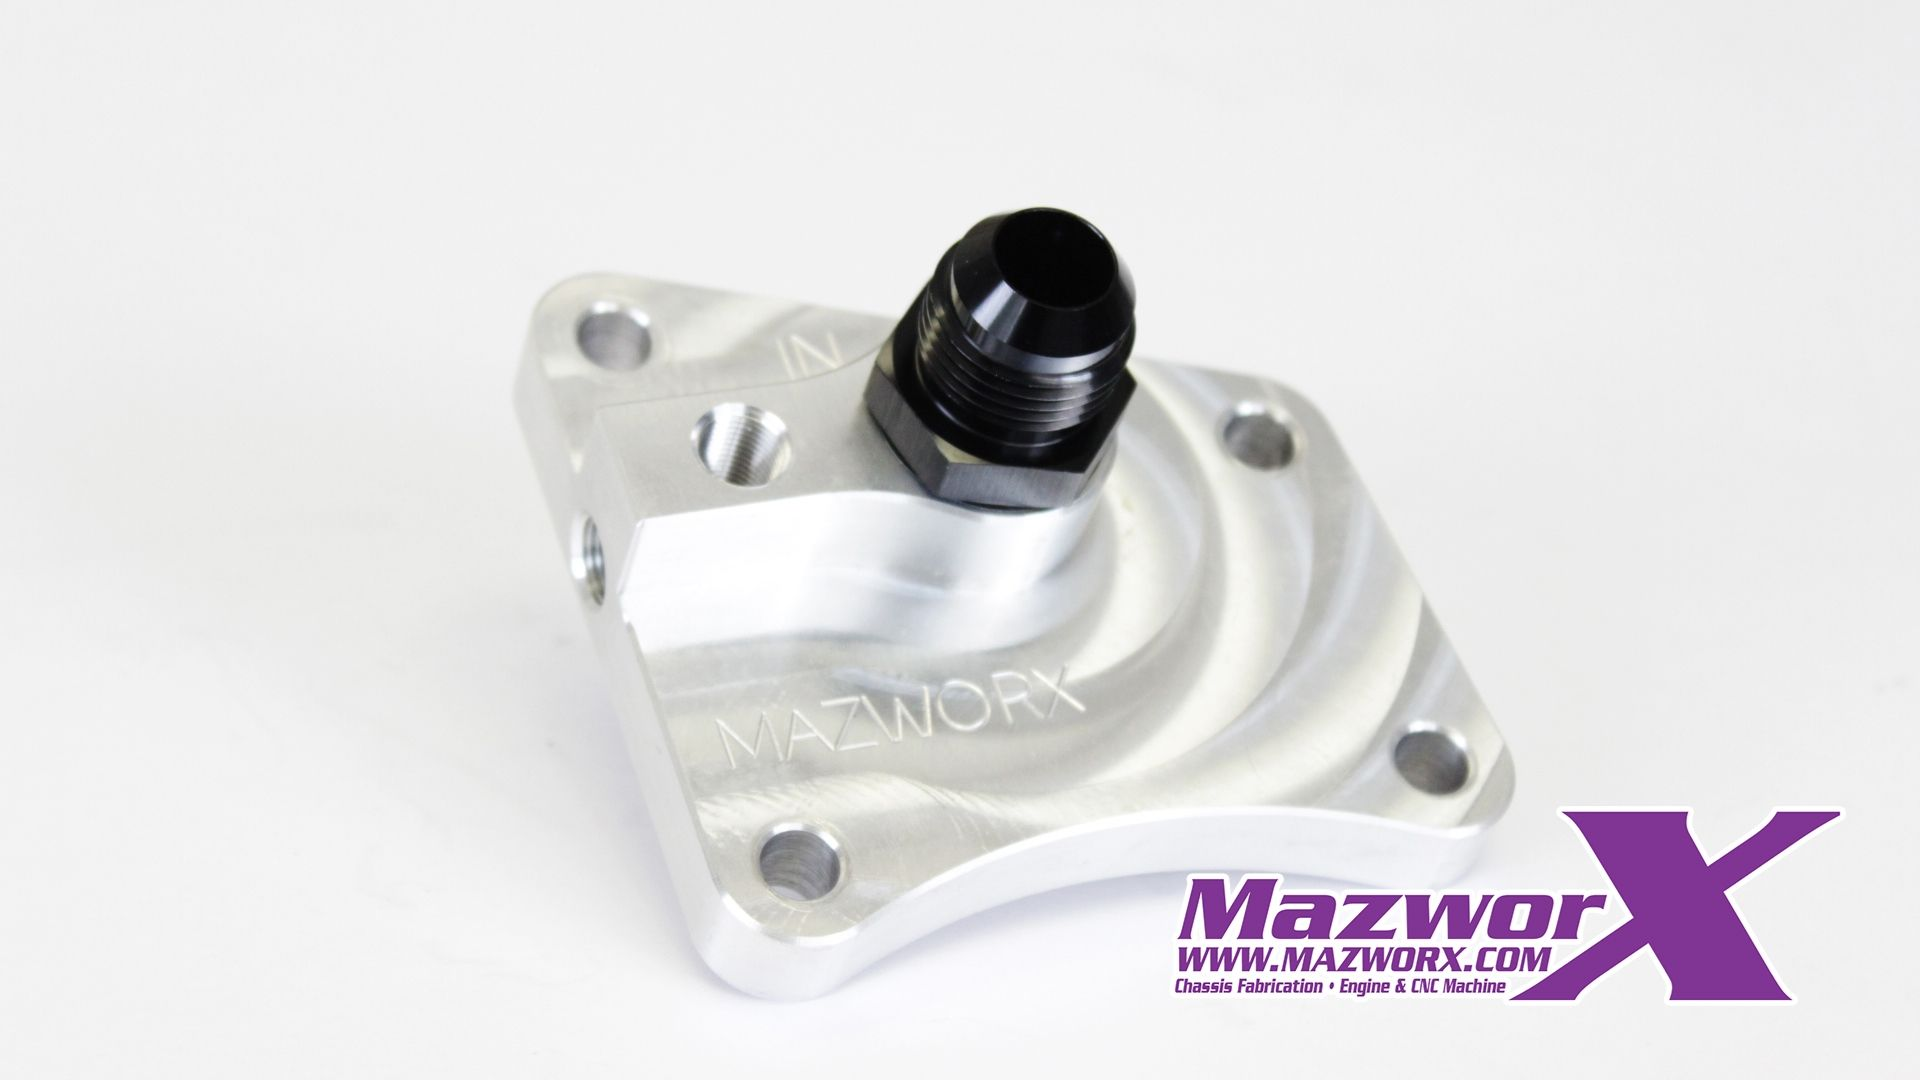 Mazworx Billet Single Port Oil Block Adapter - Nissan SR20DET RWD